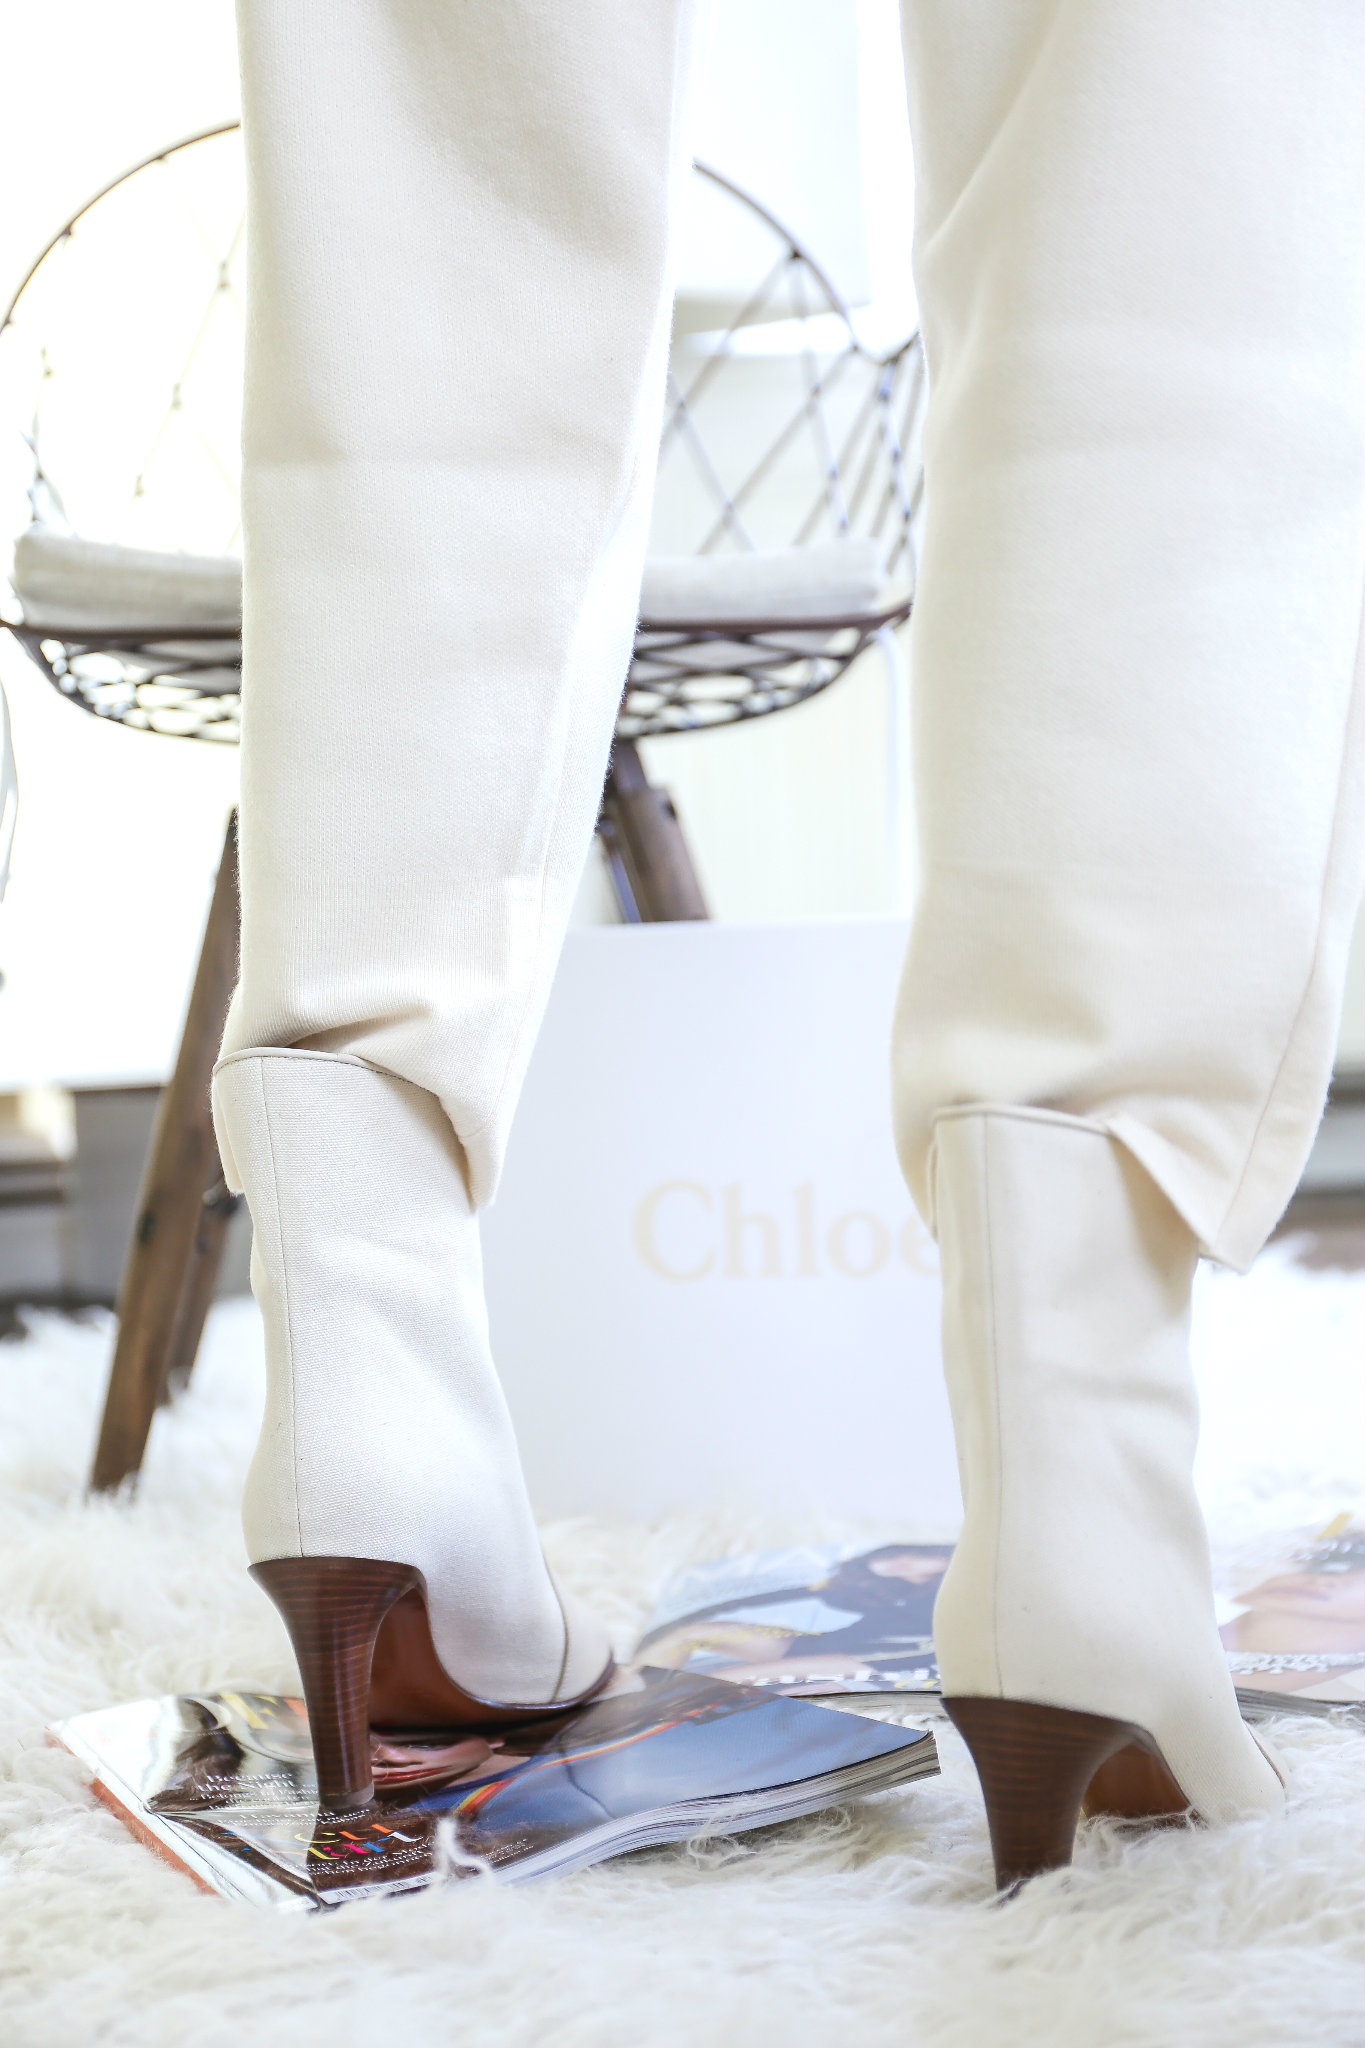 MOD-by-Monique-Fashion-Shopping-New-in-Chloé-Kole-Boots-20